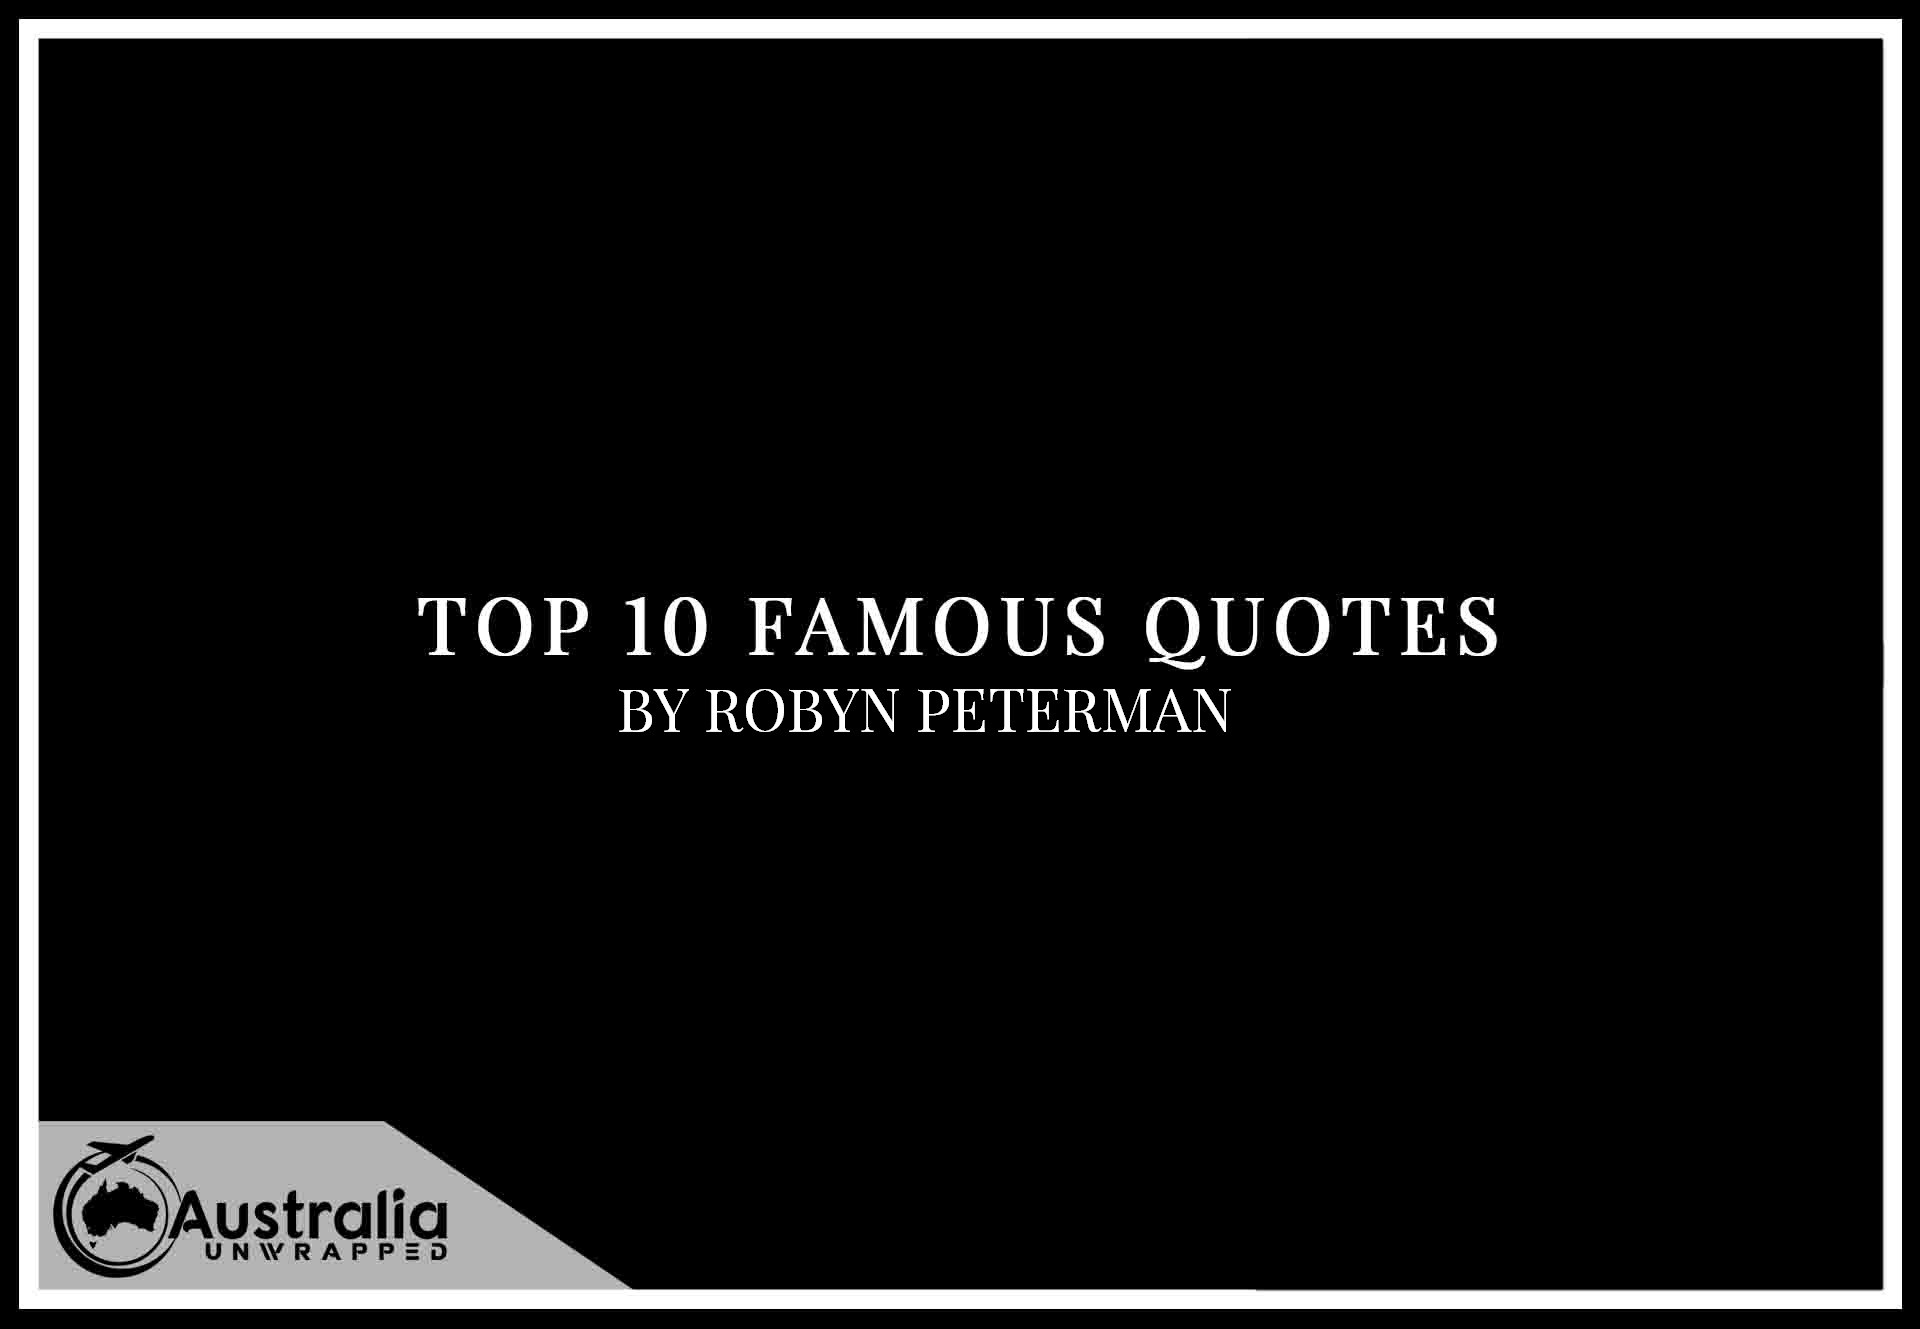 Top 10 Famous Quotes by Author Robyn Peterman